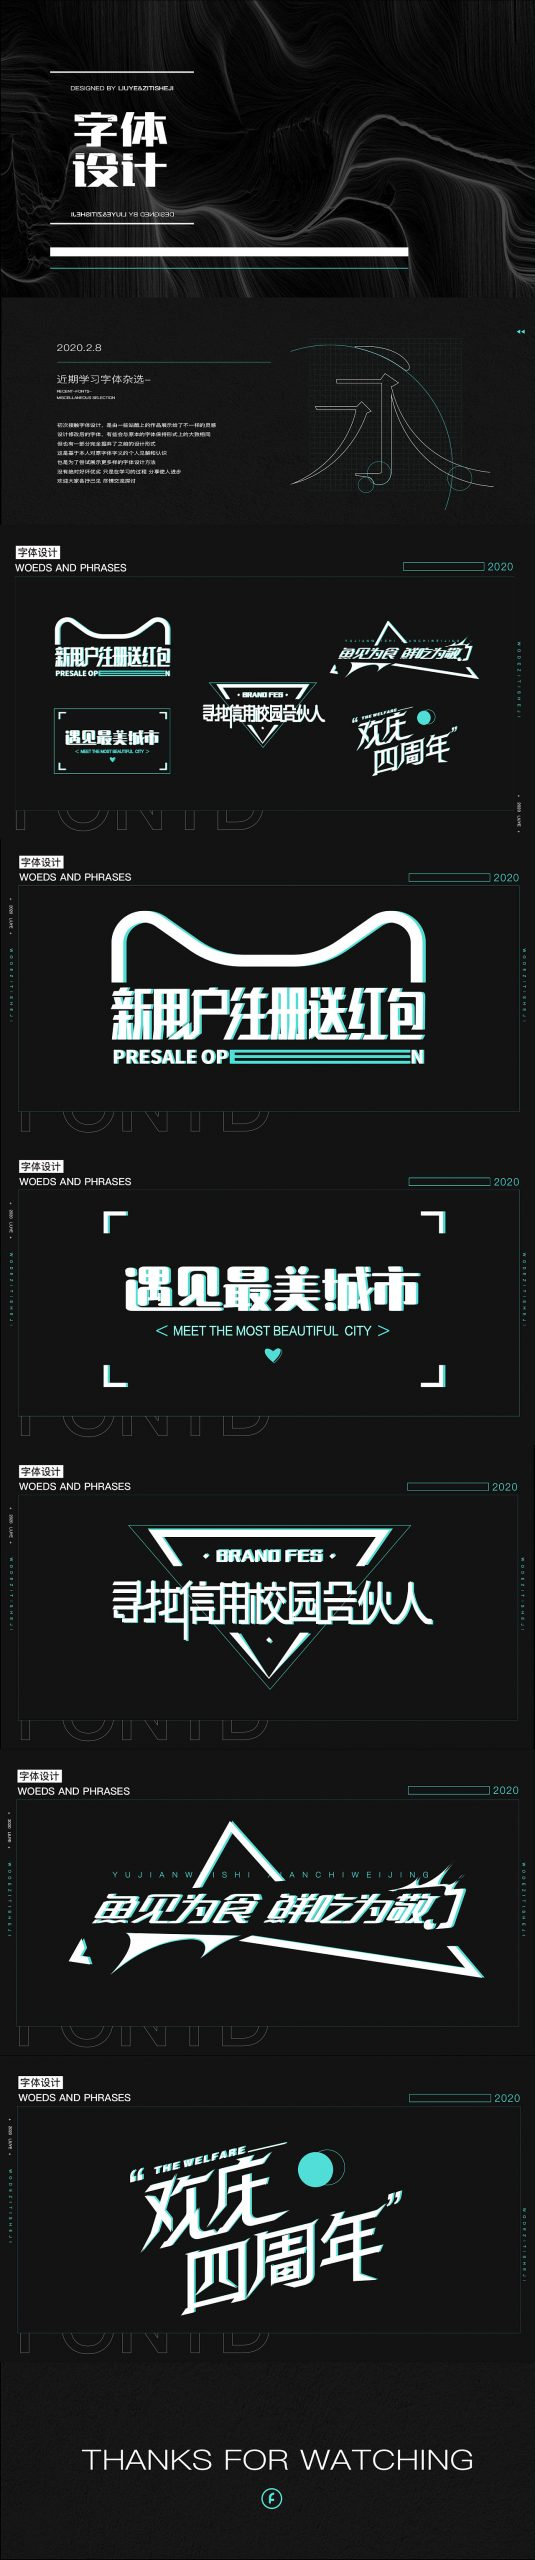 Chinese Font Design with Some Frequently Appearing Operational Fonts as Themes